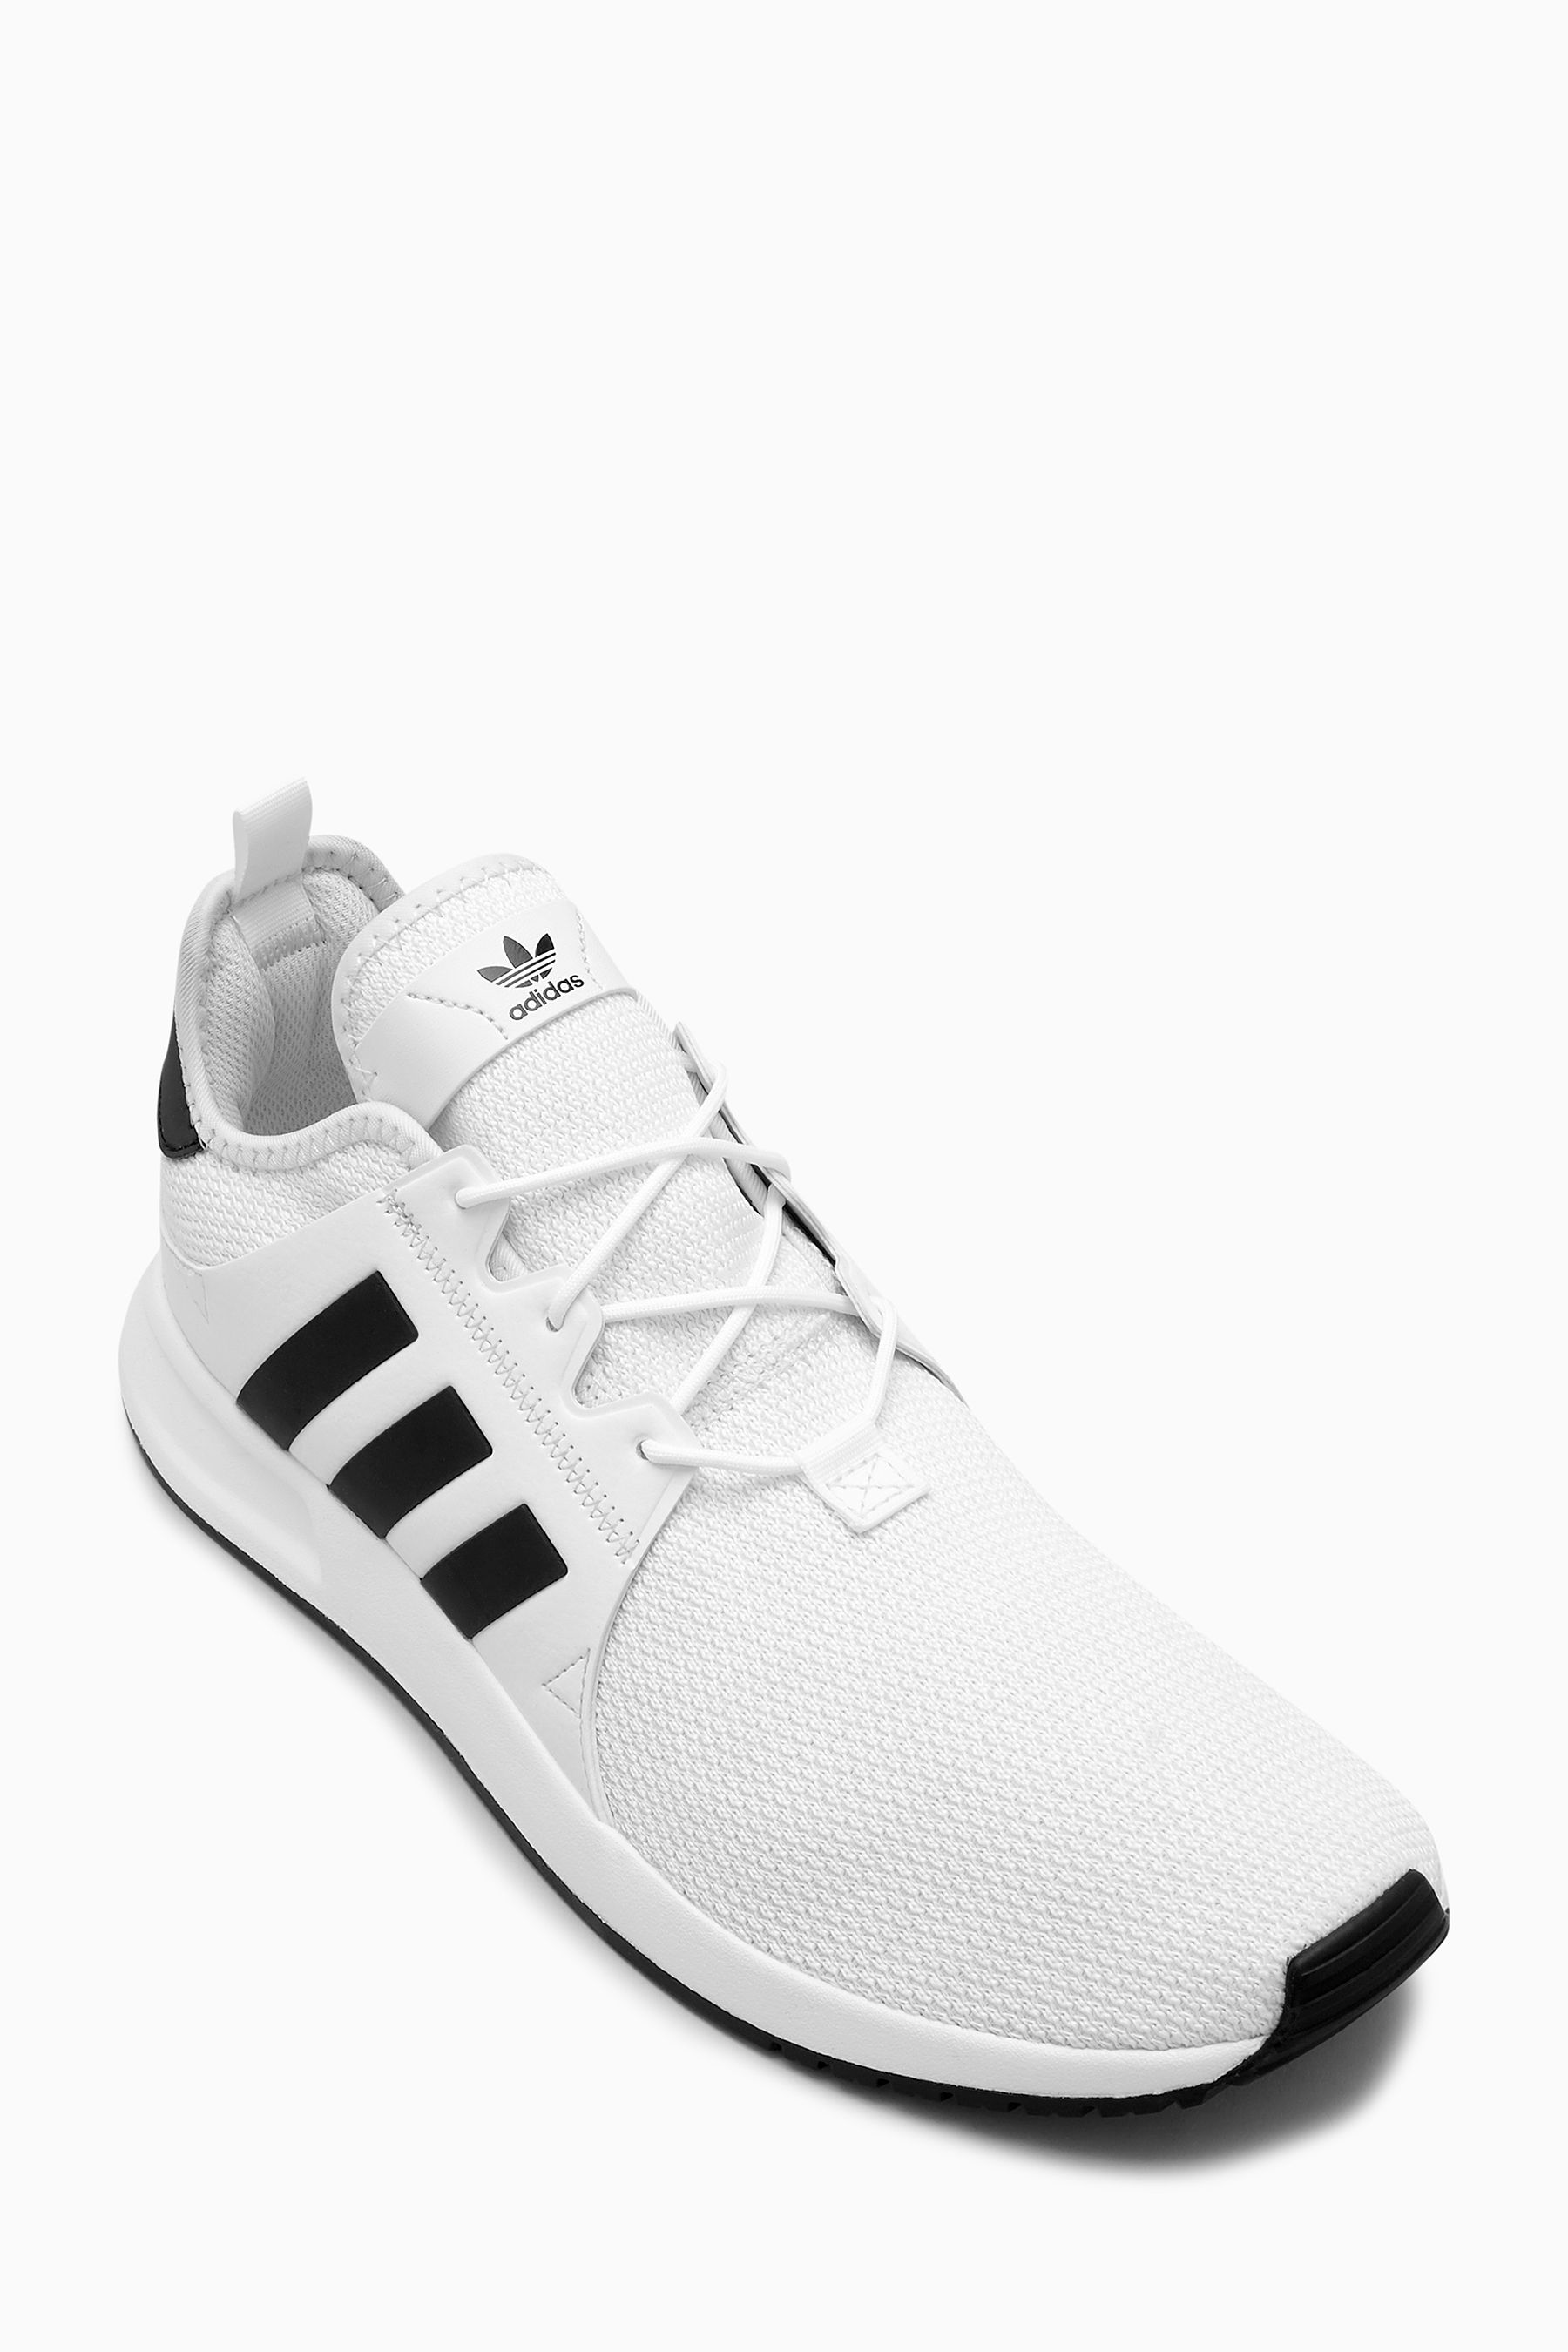 timeless design 51a2b 52f39 Mens adidas Originals XPLR - White